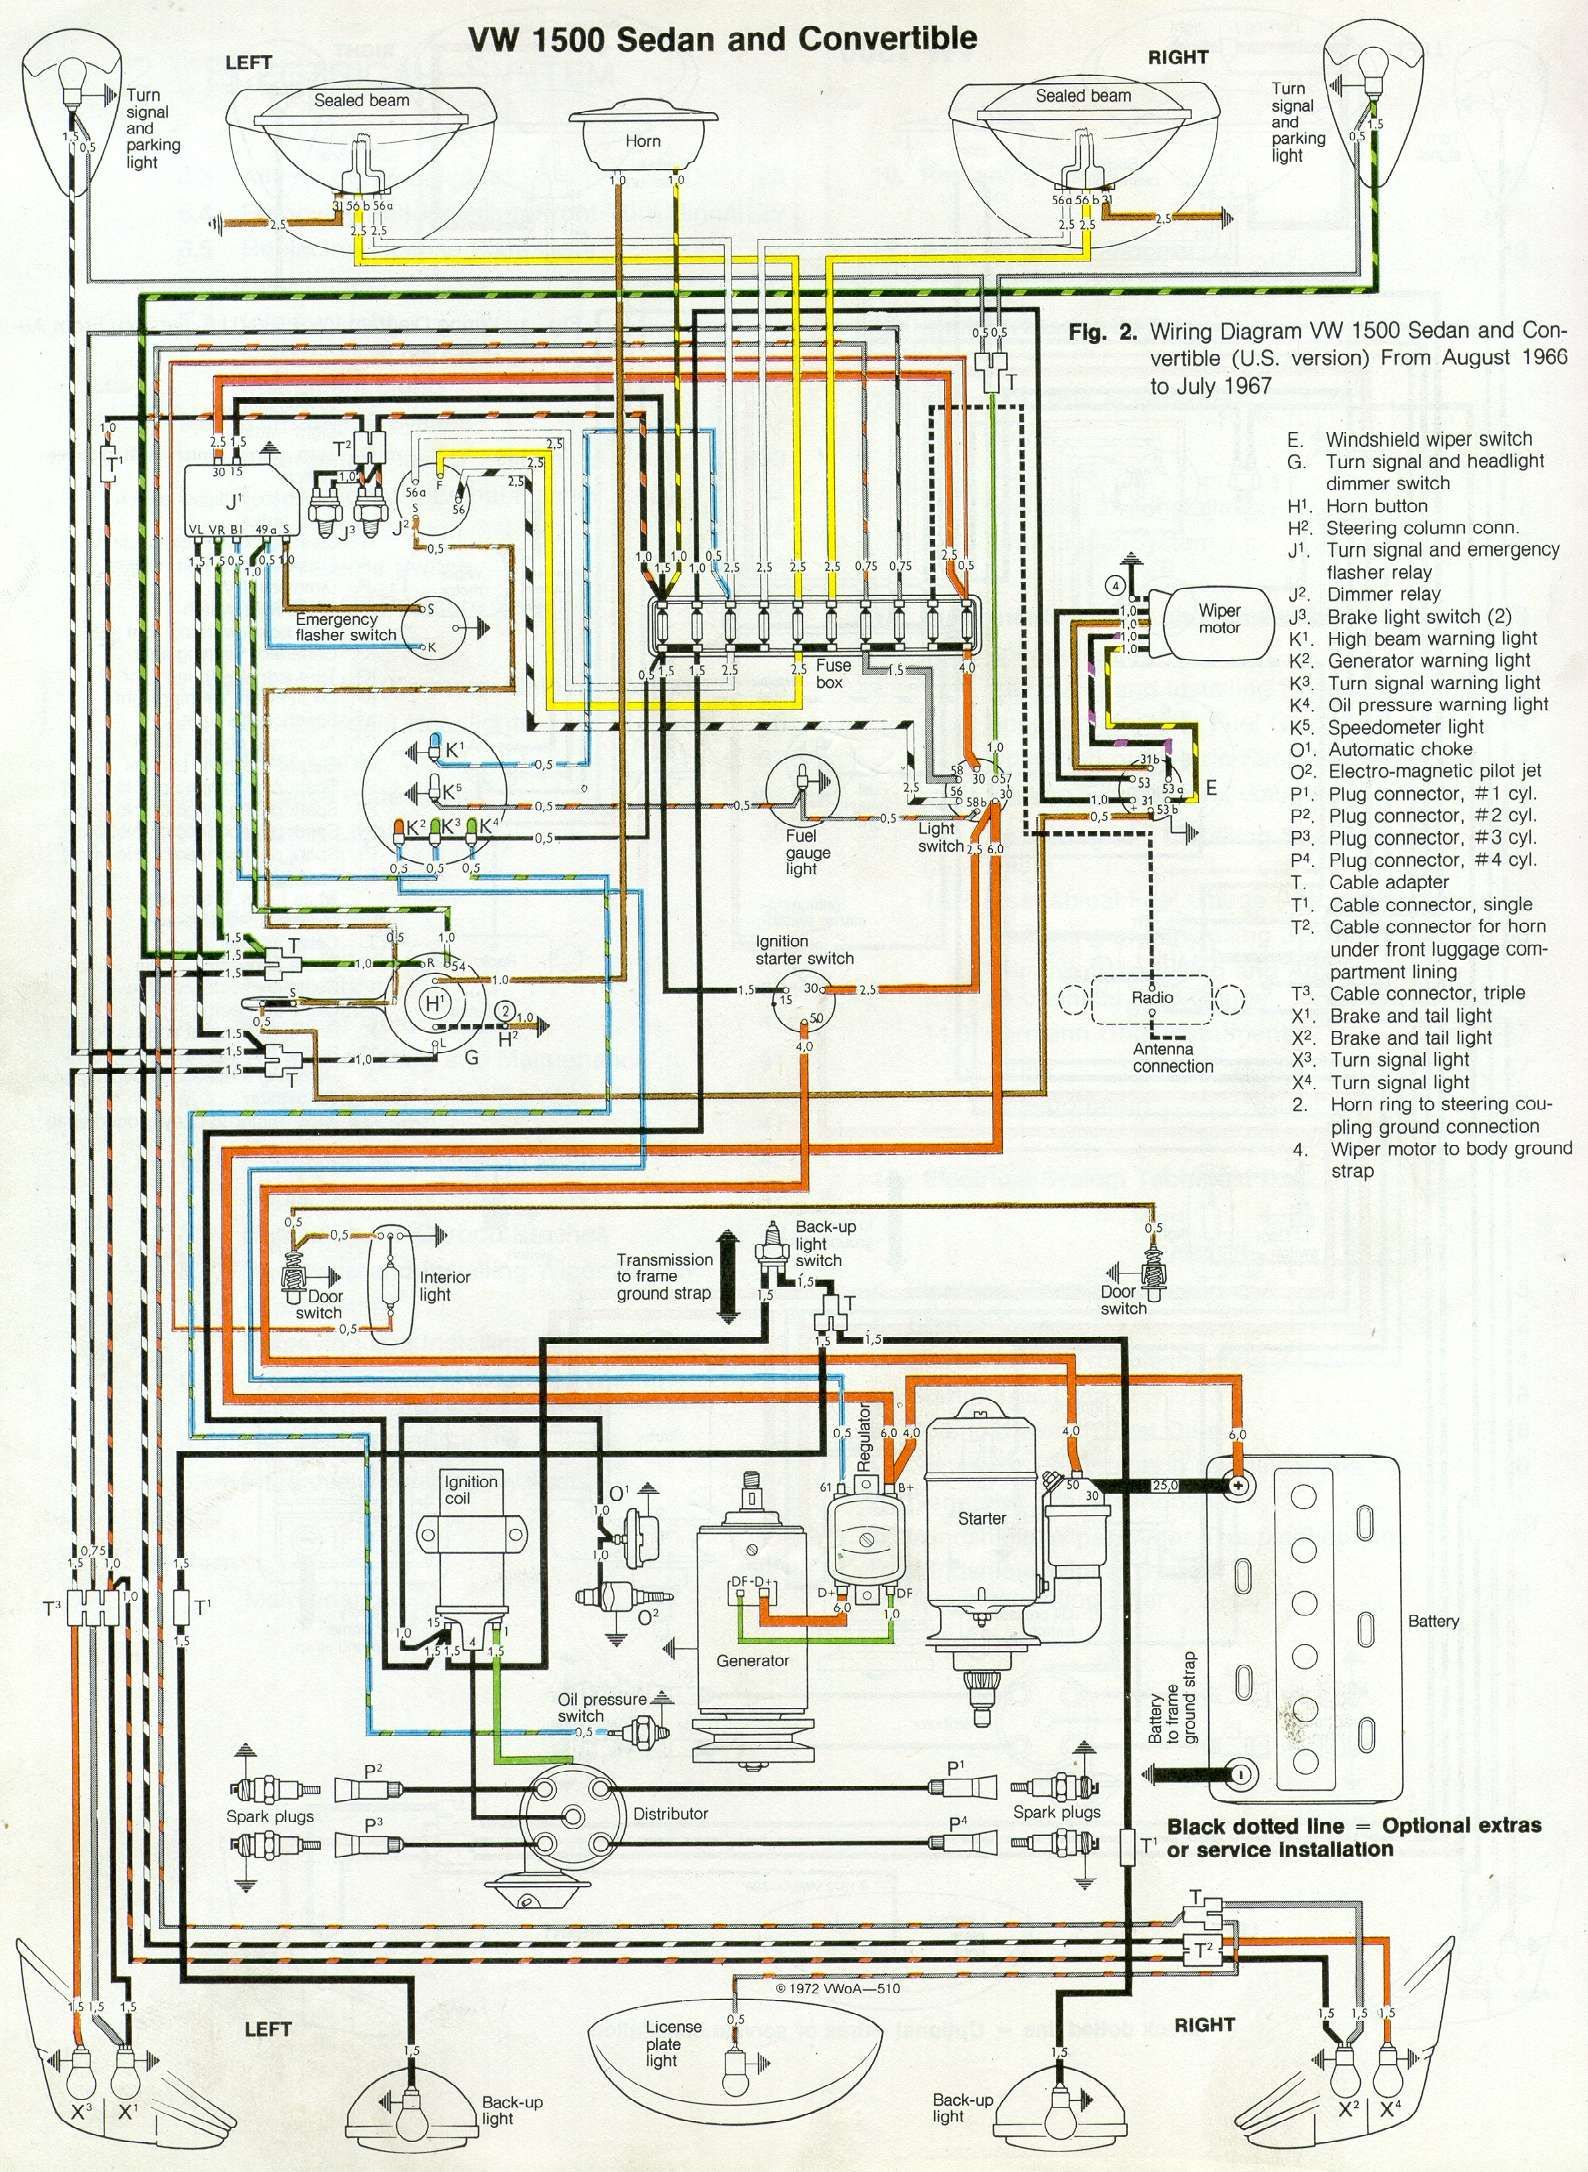 small resolution of 1968 vw wiring schematic wiring diagram fascinating 1968 vw wiring schematic wiring diagrams konsult 1968 vw